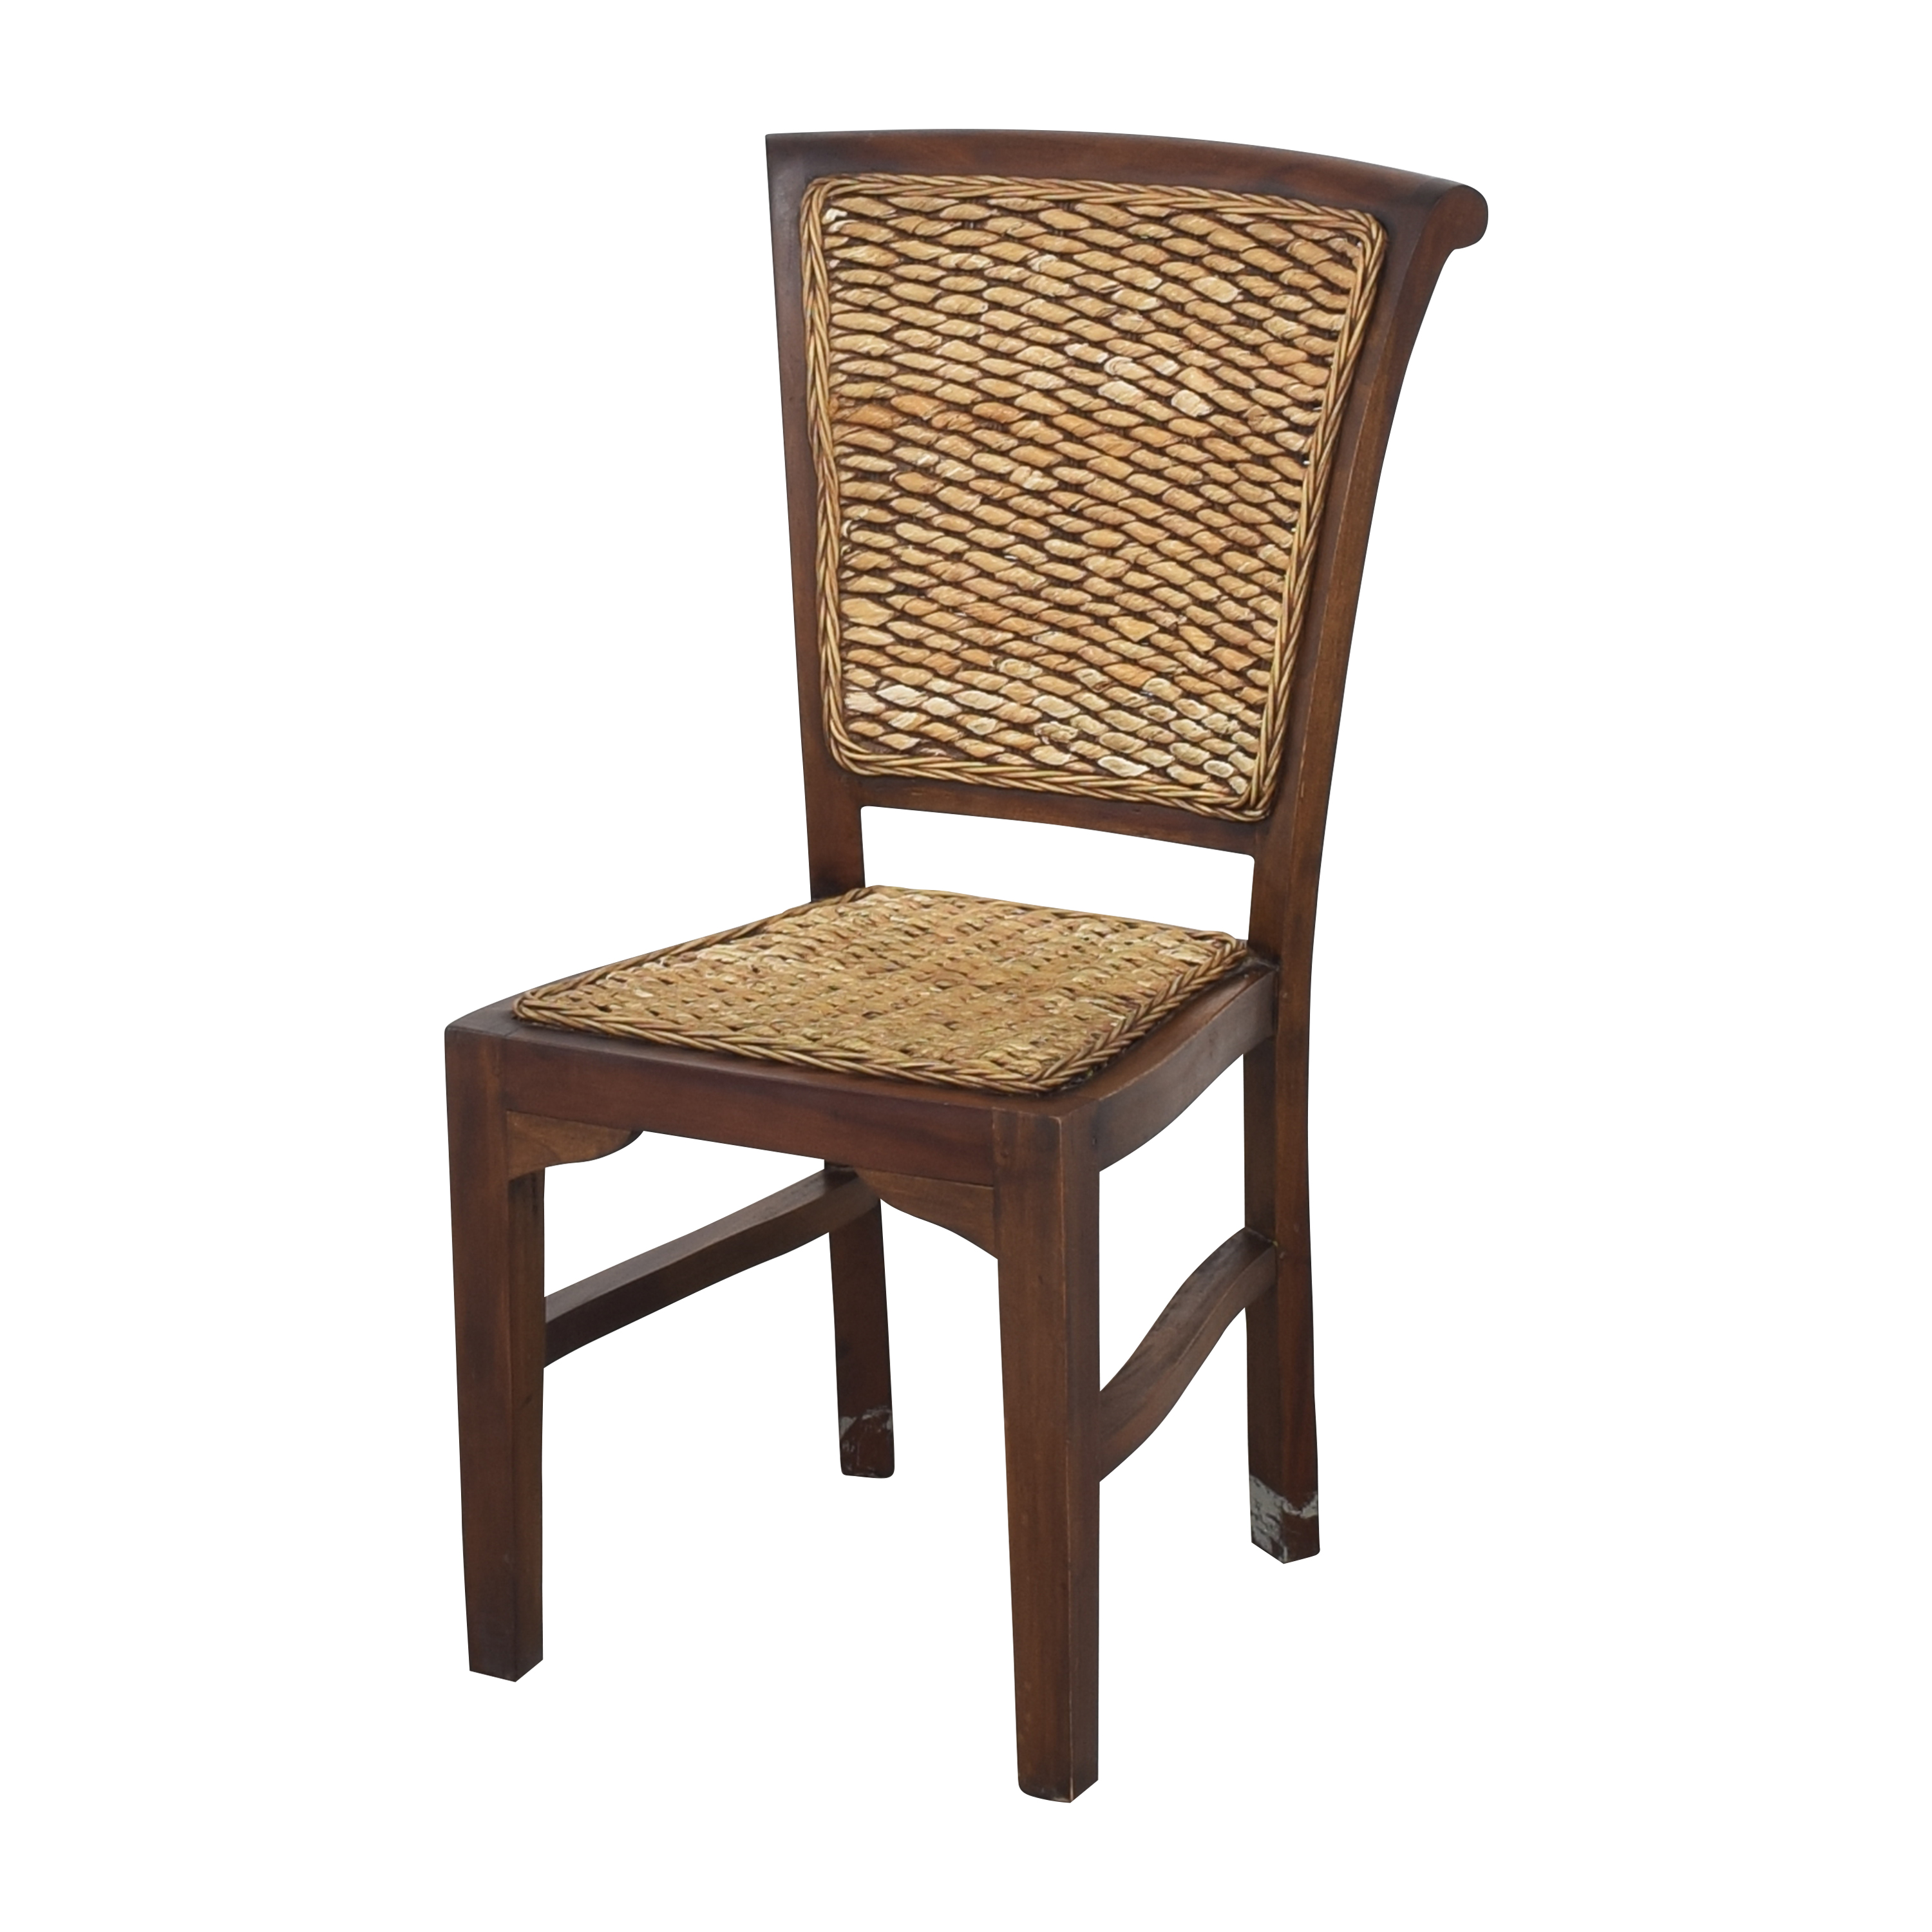 ABC Carpet & Home Woven Dining Chairs / Chairs